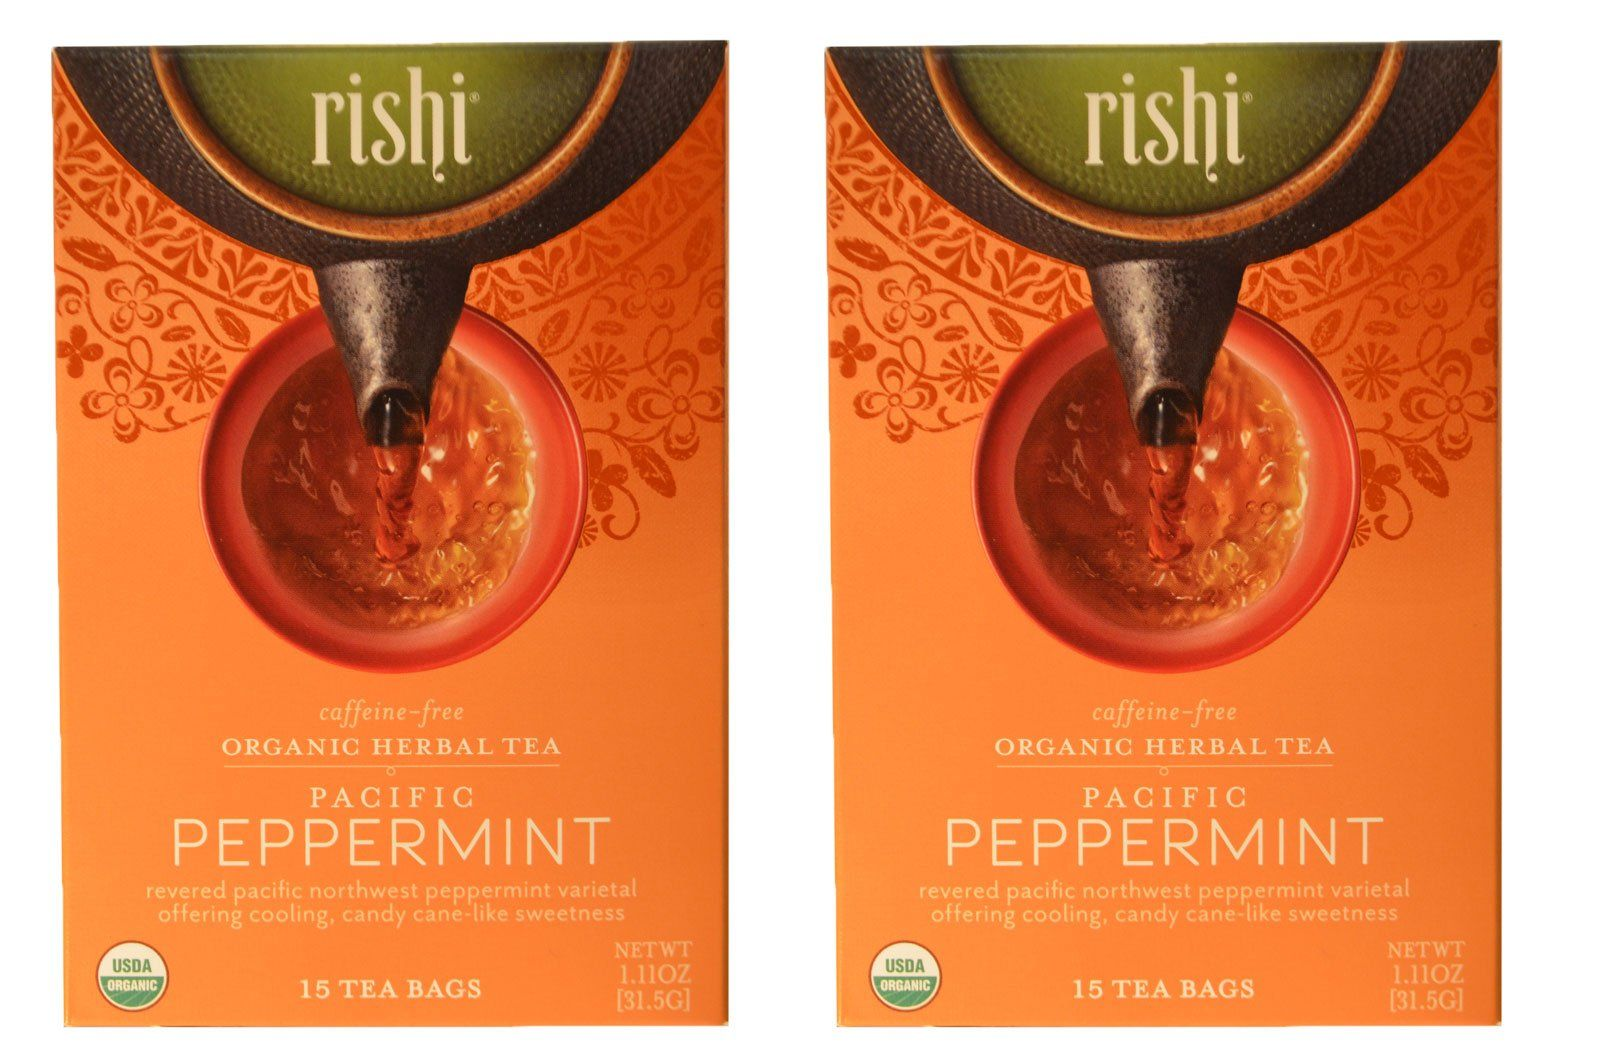 Rishi Caffeine-Free USDA Organic Herbal Tea Pacific Peppermint Certified Kosher 15 Tea Bags - 1.11 oz (2 Pack) -- Awesome products selected by Anna Churchill